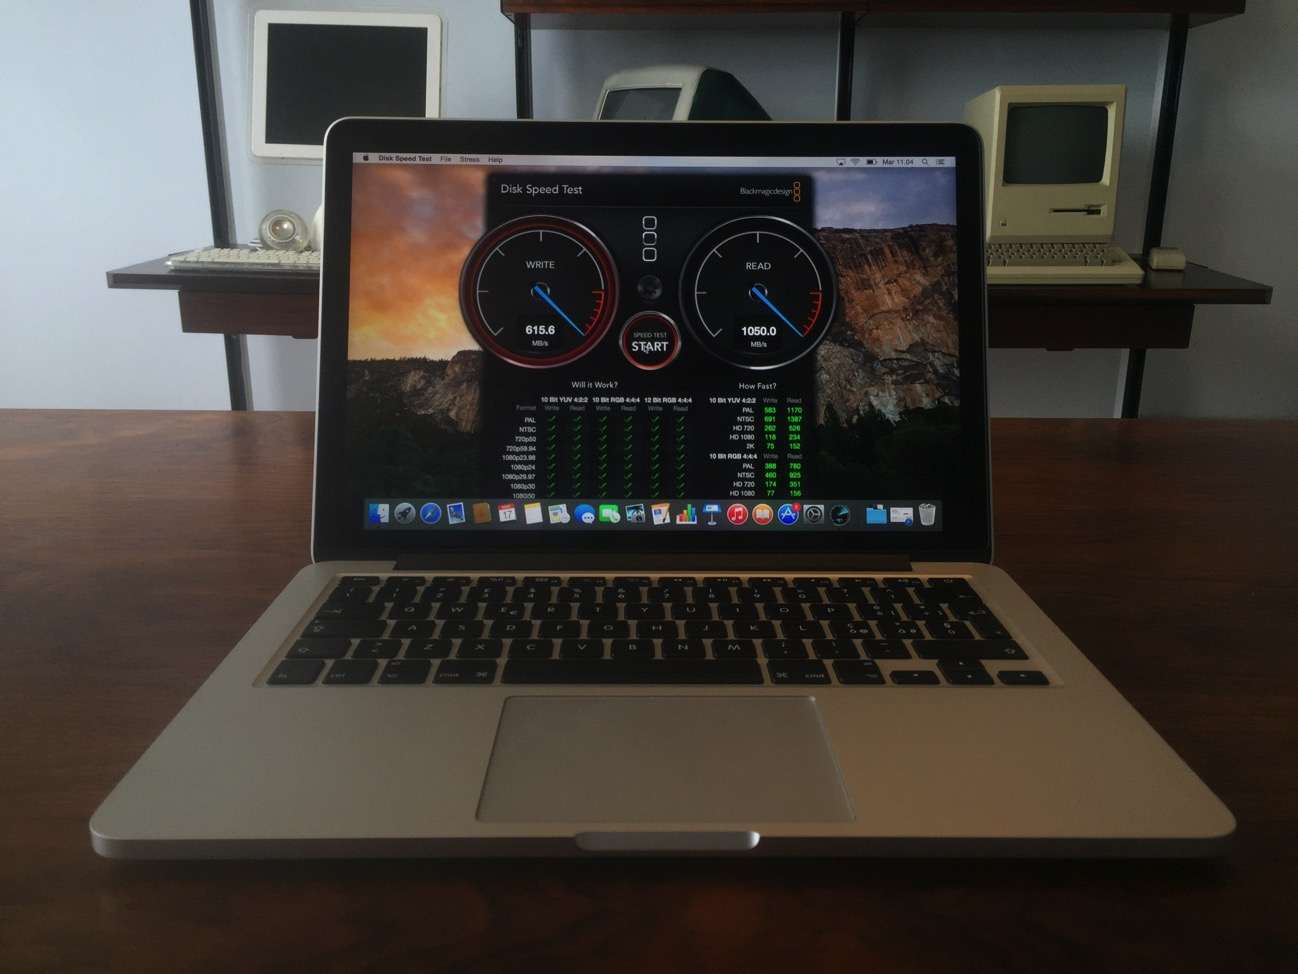 MacBook Pro 13 2015 BenchmarkJPG